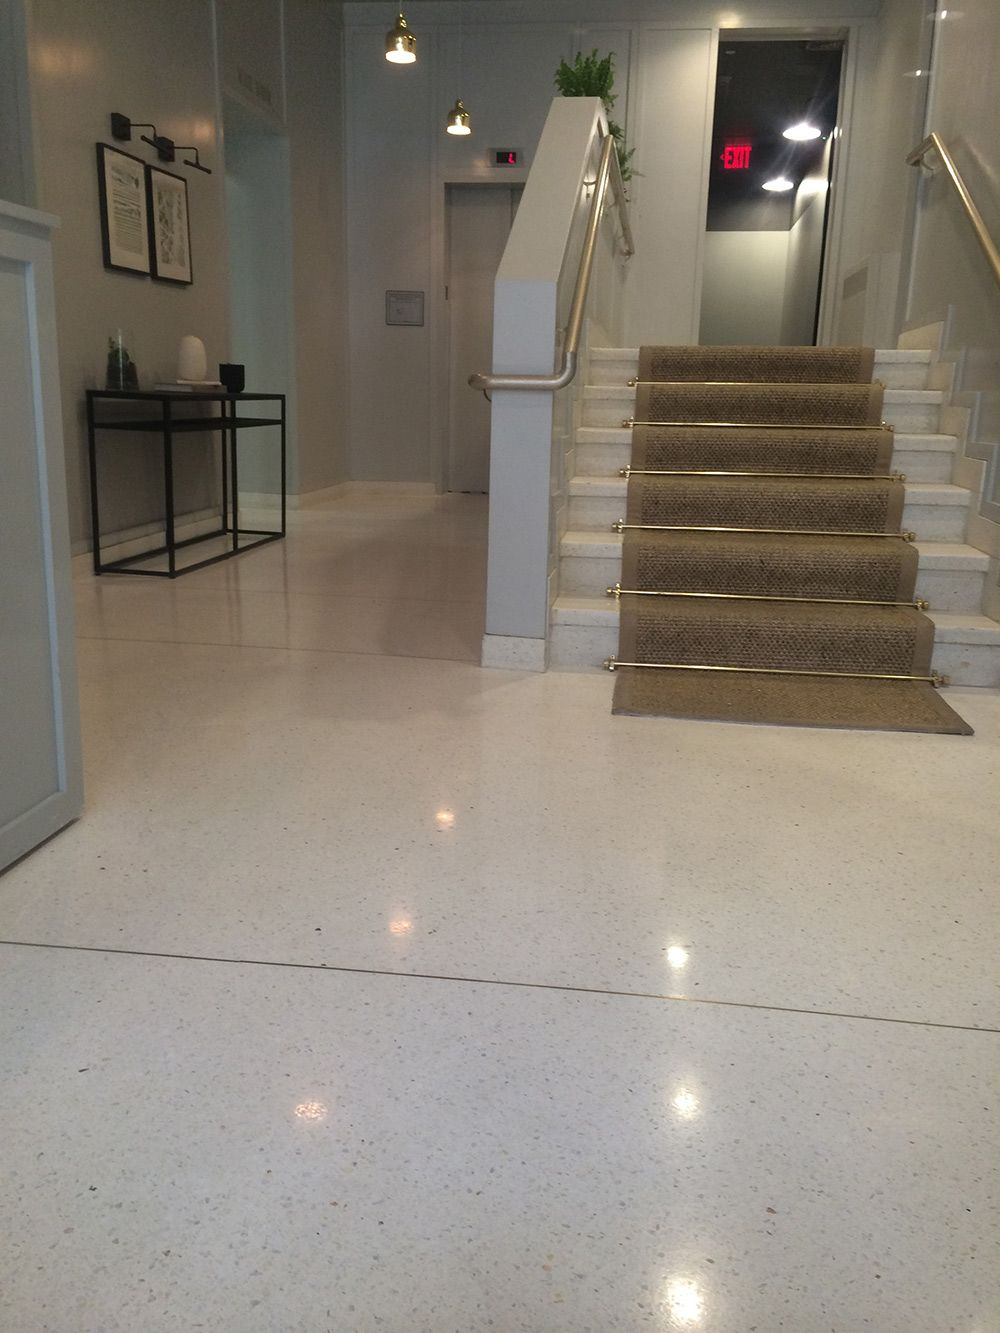 Terrazzo flooring advantages and disadvantages house interior terrazzo flooring advantages and disadvantages do not damage your terazzo flooring by obeying these tips solutioingenieria Gallery